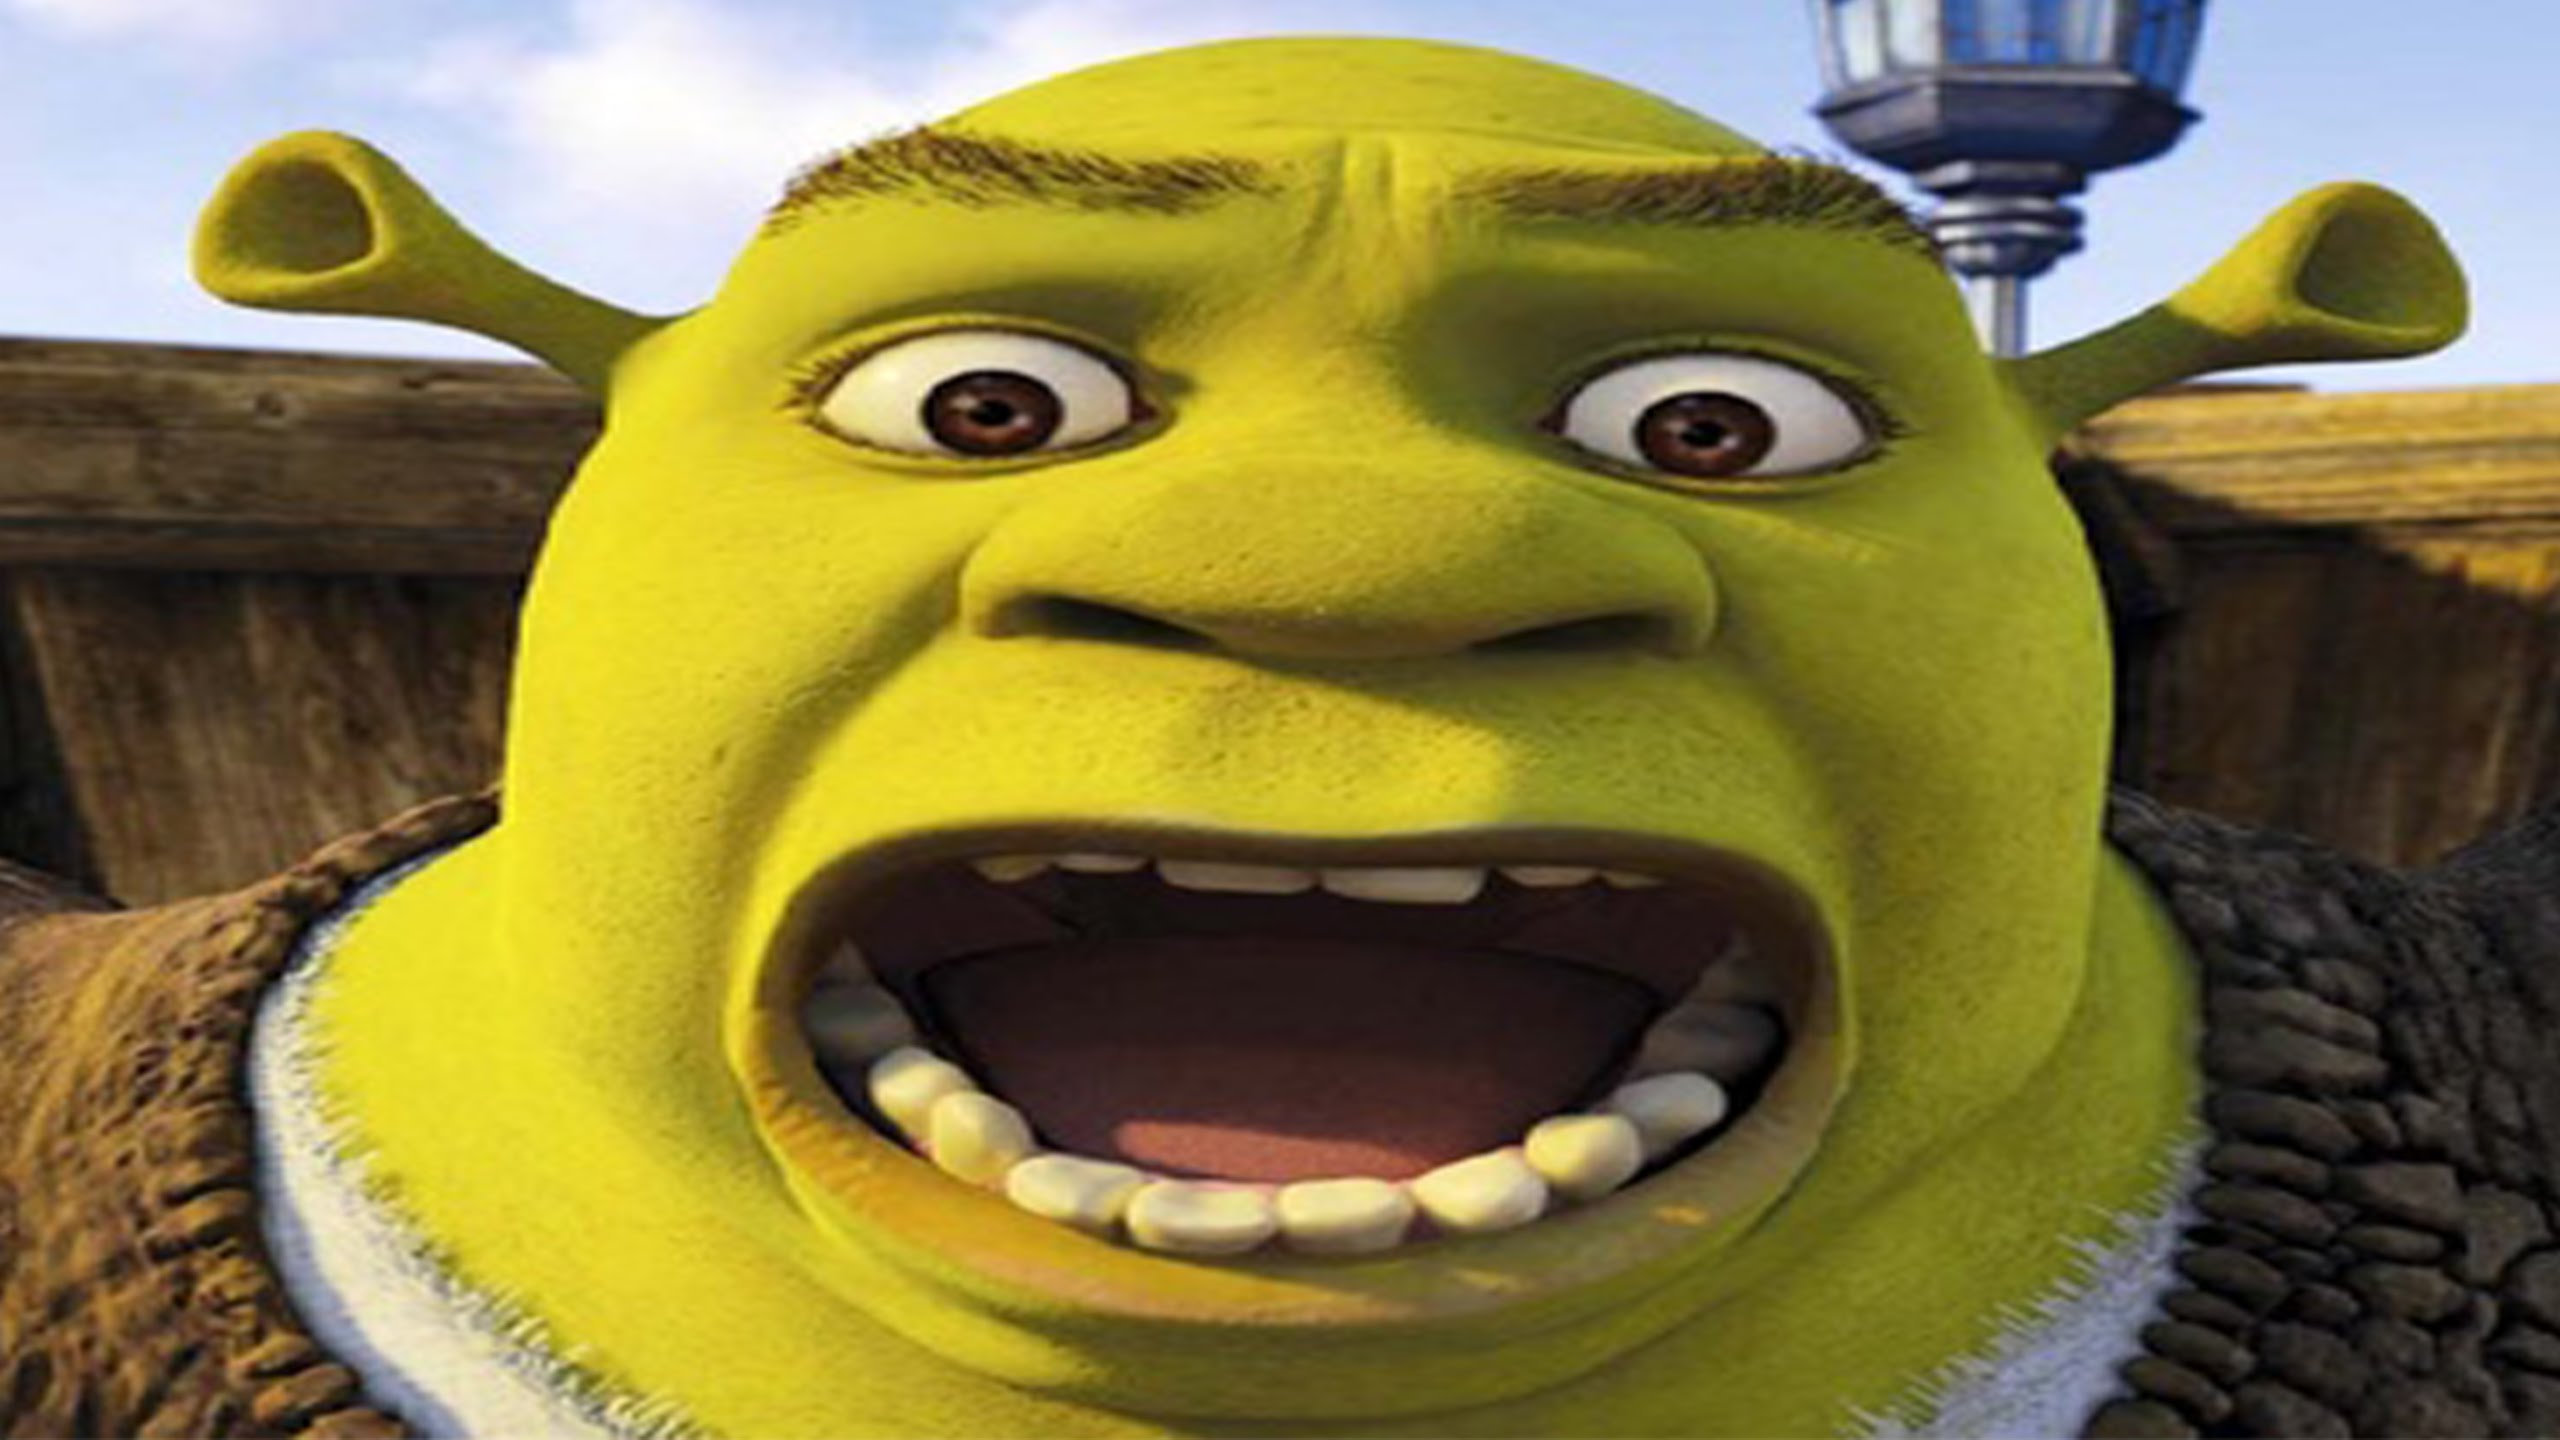 HQ Shrek Wallpapers | File 228.9Kb